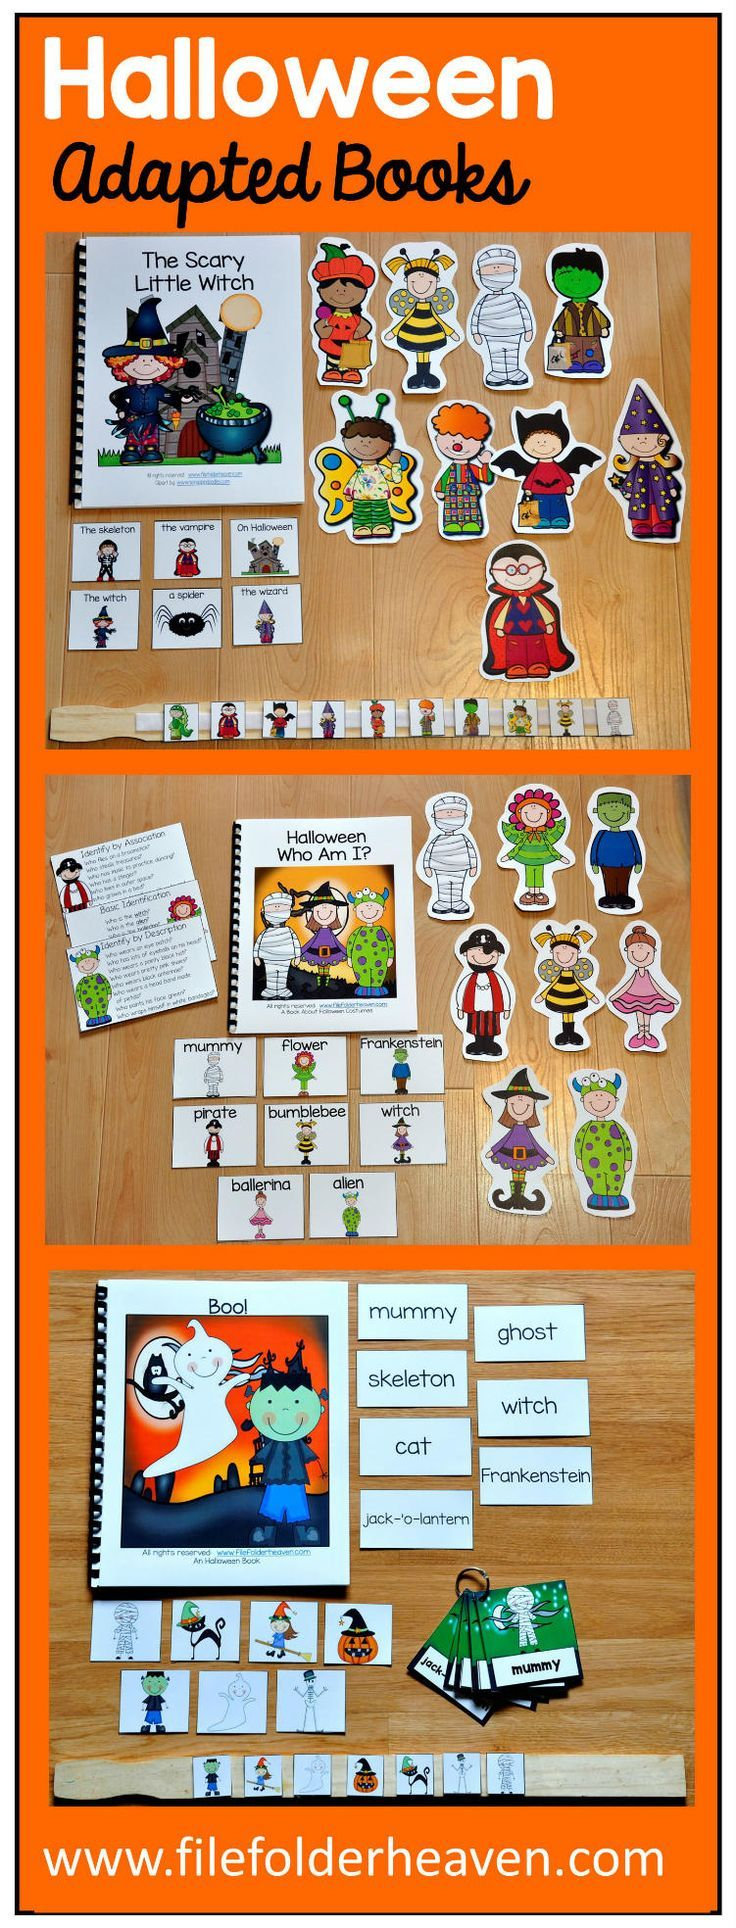 So many fun Halloween Adapted Books this season that focus on basic vocabulary, -wh questions, and sequencing.